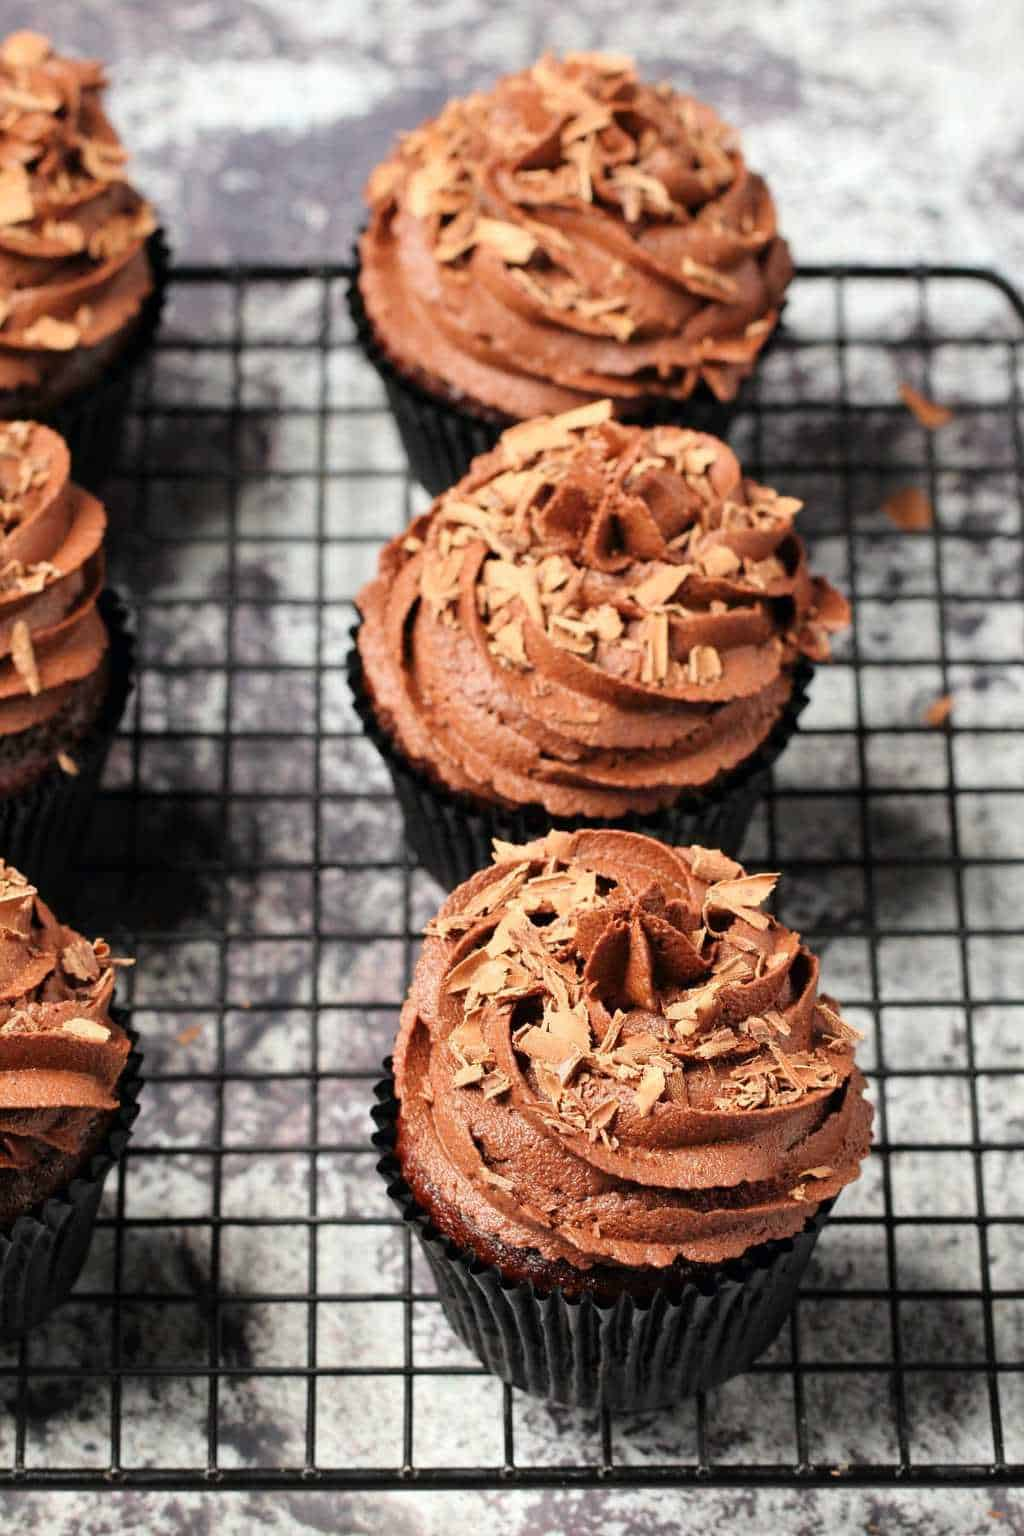 Classic vegan chocolate cupcakes topped with vegan chocolate buttercream and chocolate shavings on a wire cooling rack.